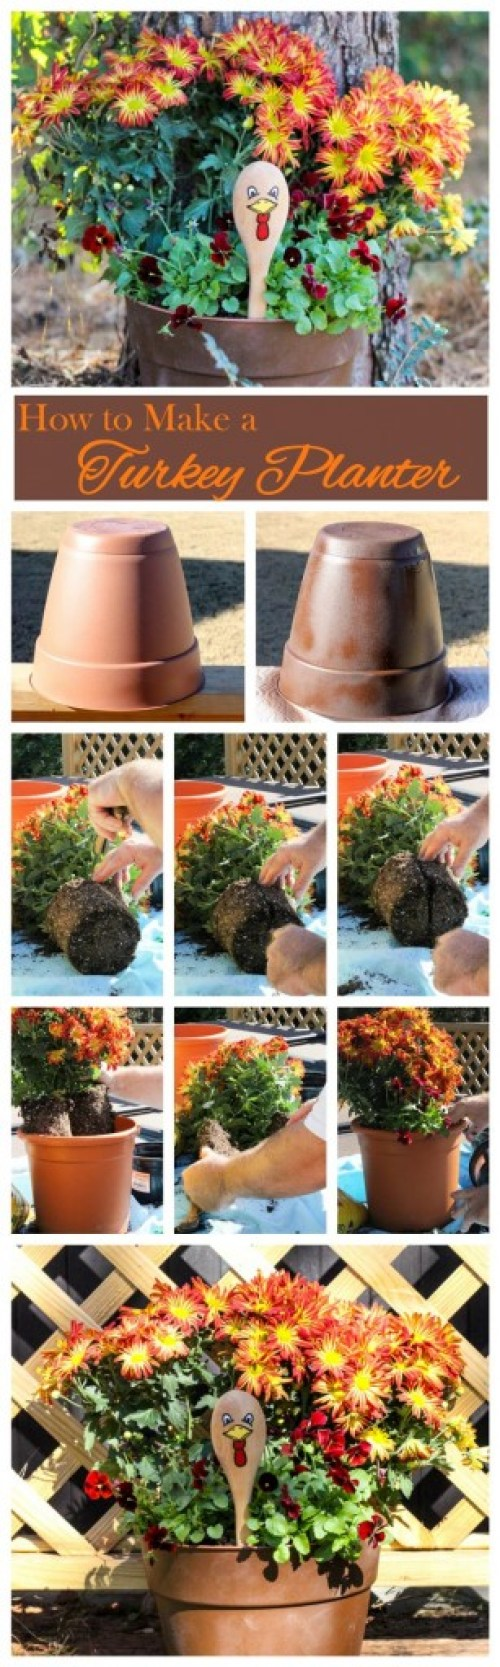 How-to-Make-a-Turkey-Planter-2